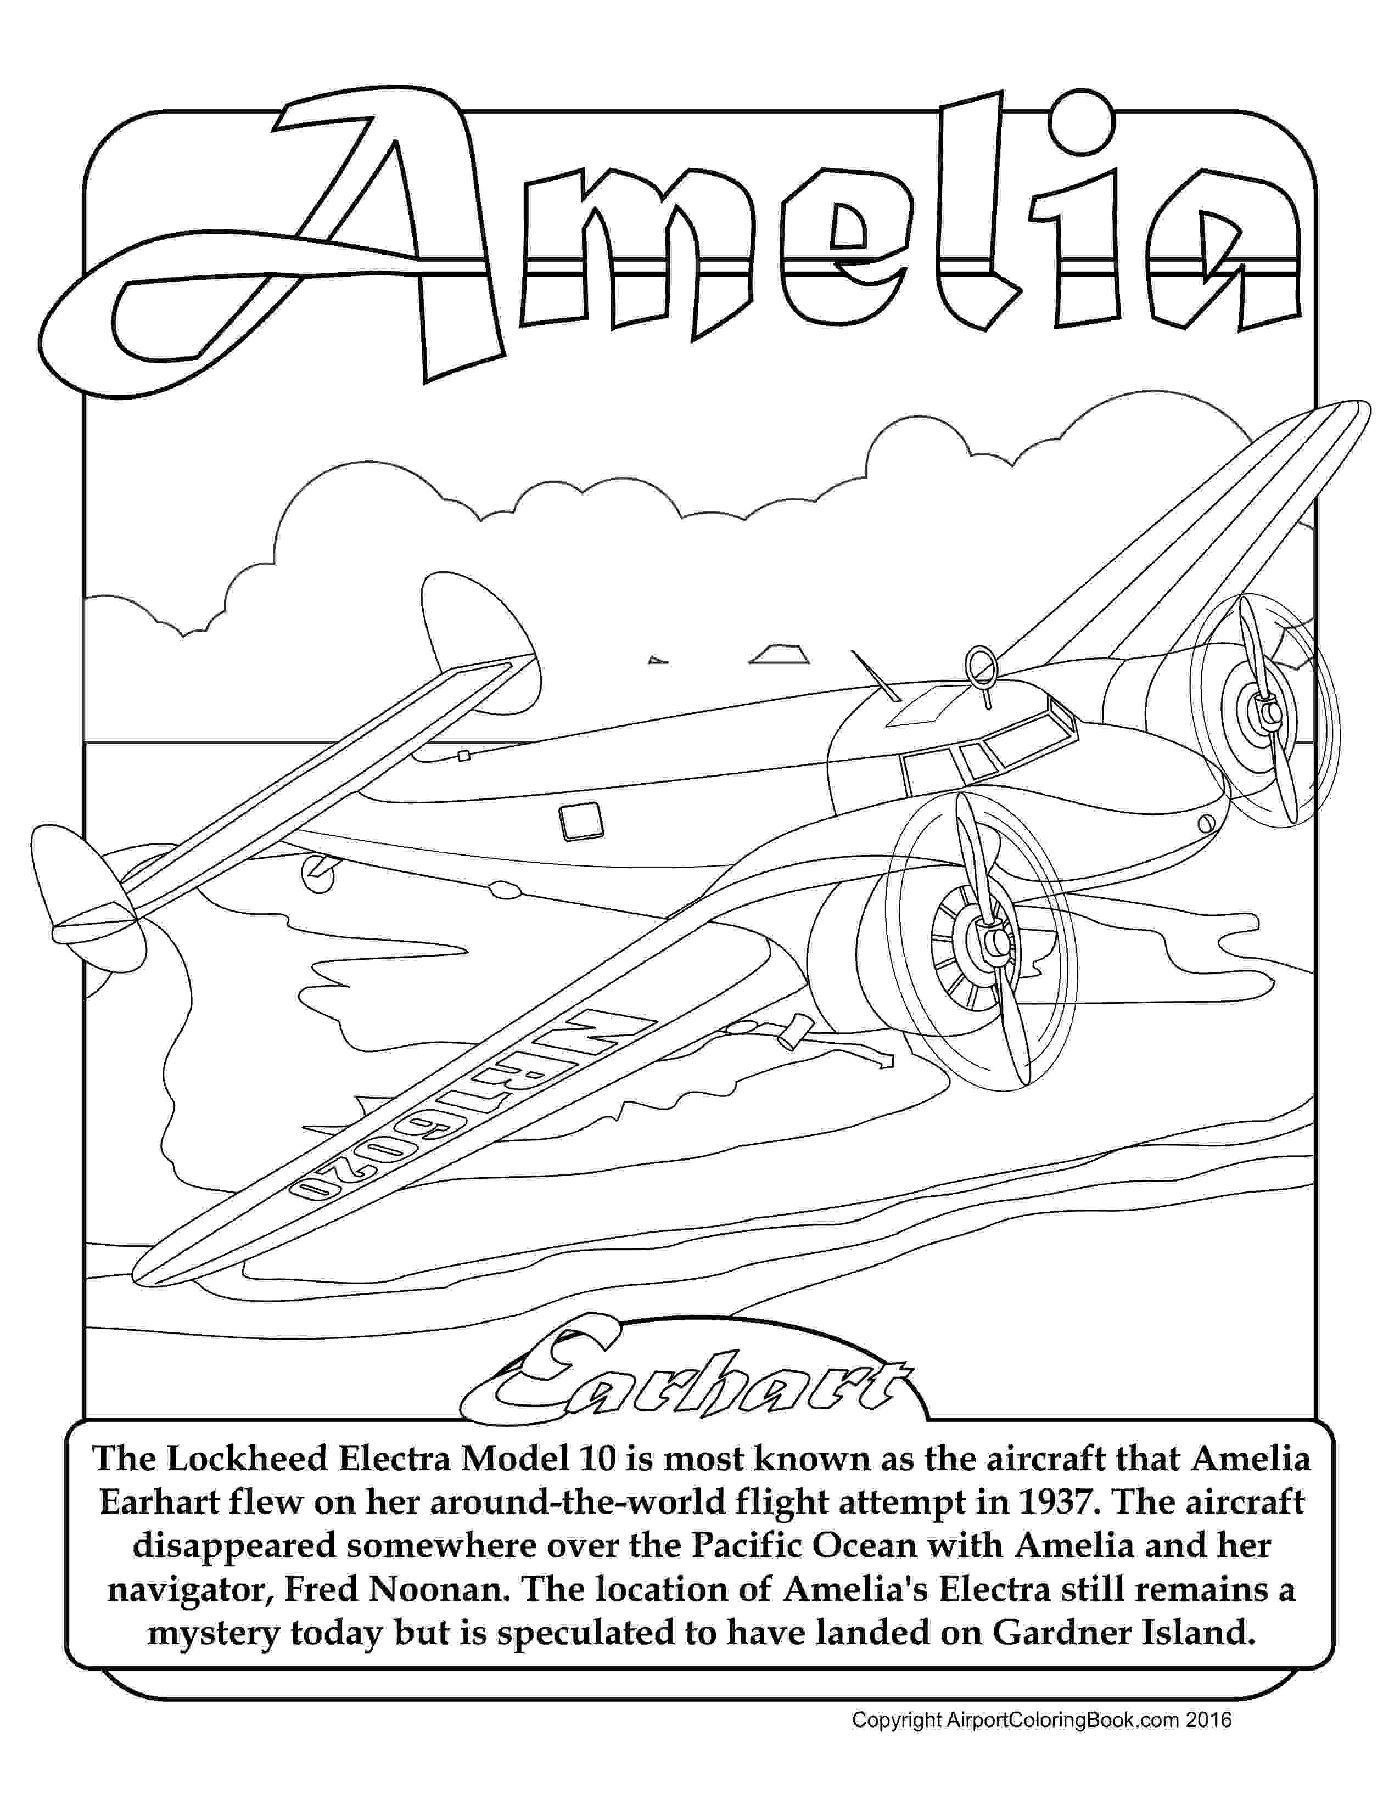 Airport Coloring Book Amelia Earhart Lockhead Electra for coloring ...